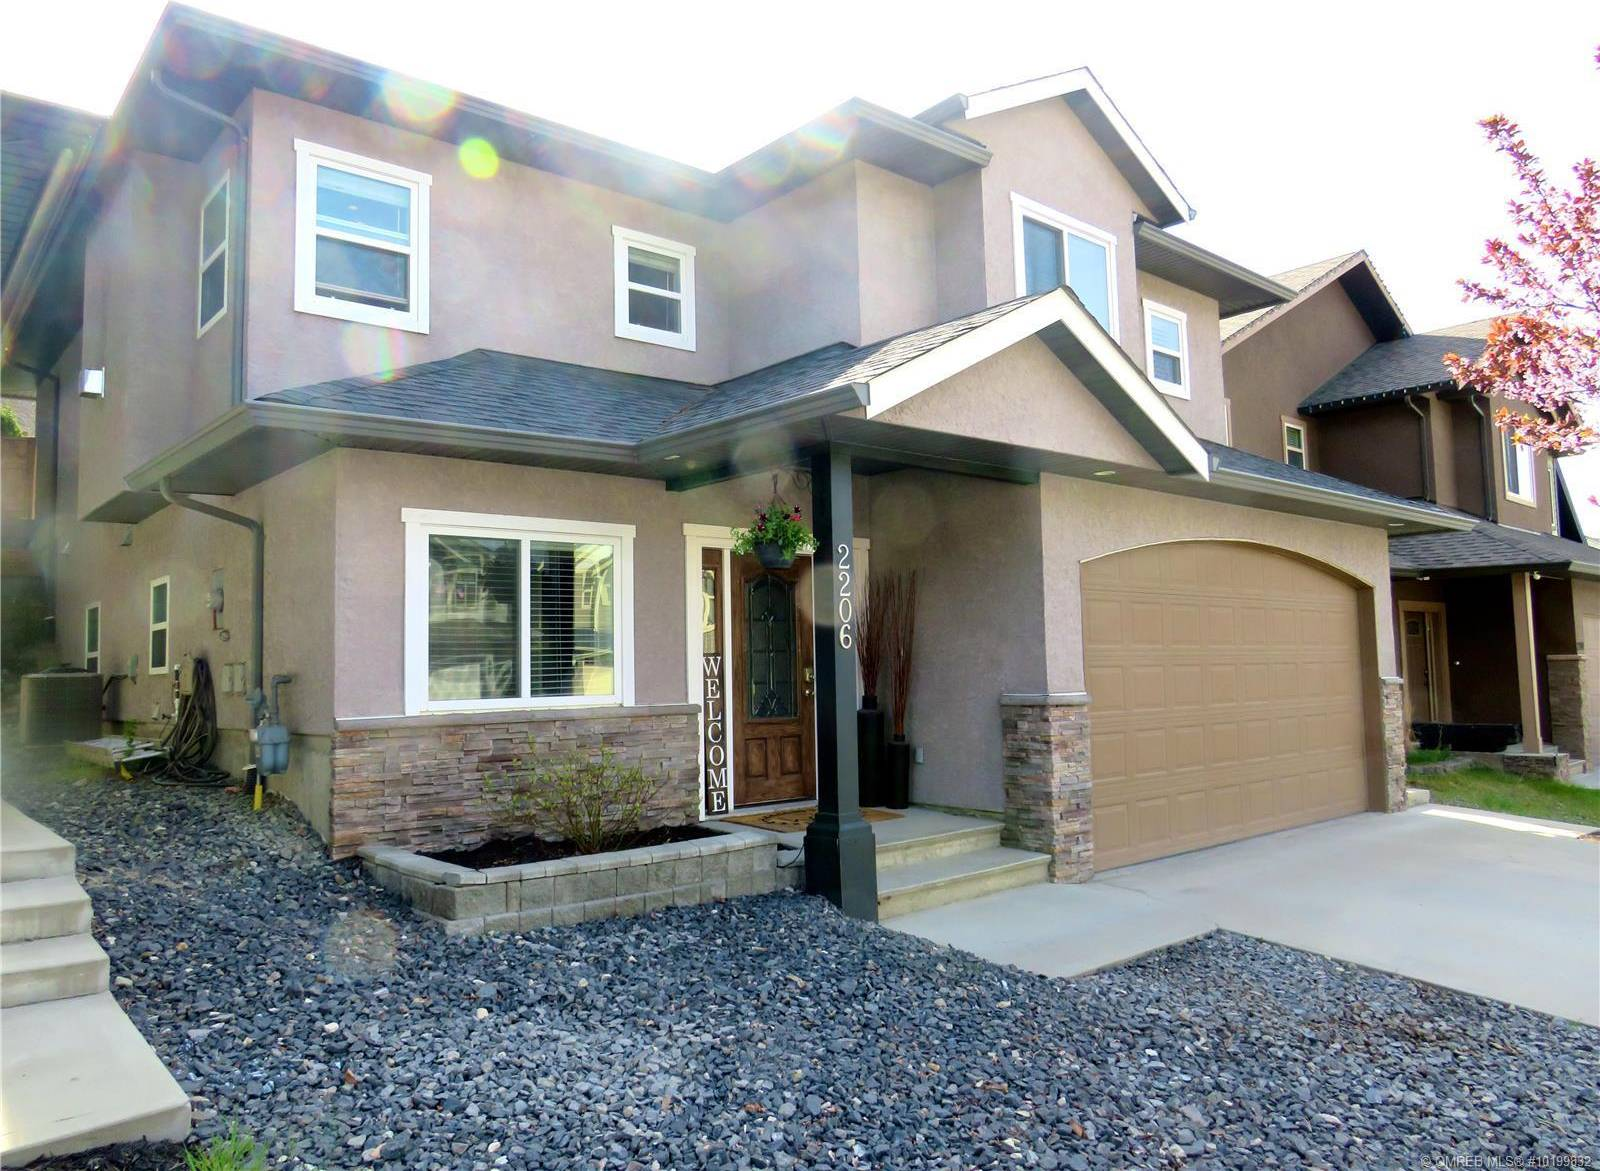 House for sale at 2206 Sunview Dr West Kelowna British Columbia - MLS: 10199832